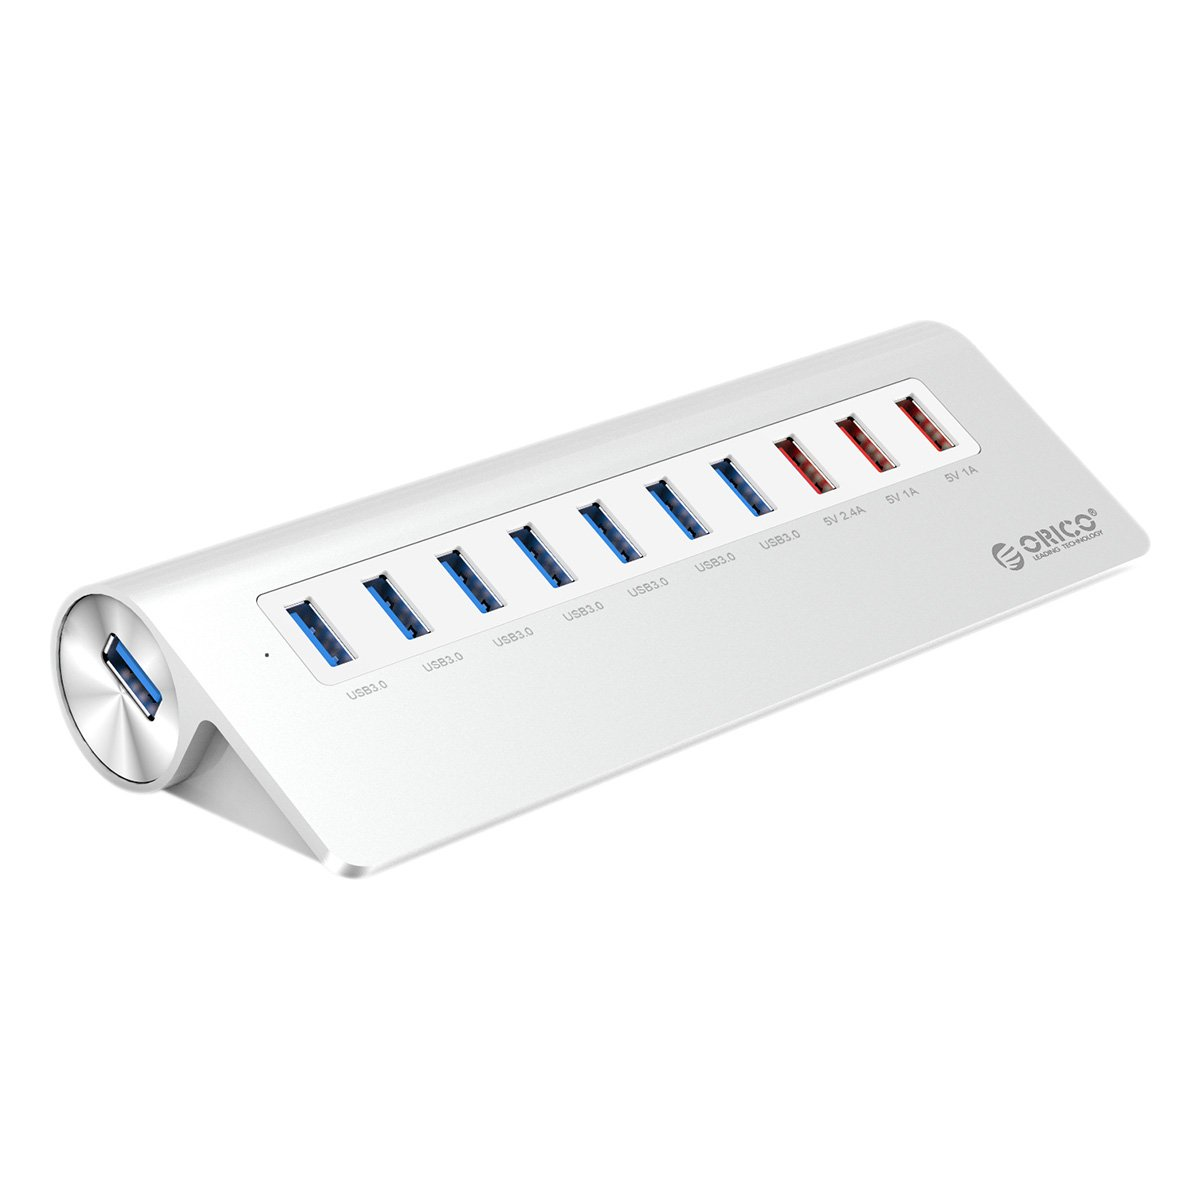 ORICO Premium 10 Port USB 3.0 Hub with 3.3 Ft Cable - 7 USB 3.0 Ports, 3 Charging Ports for iMac, MacBook, MacBook Air, Mac Mini, or Any PC - Silver